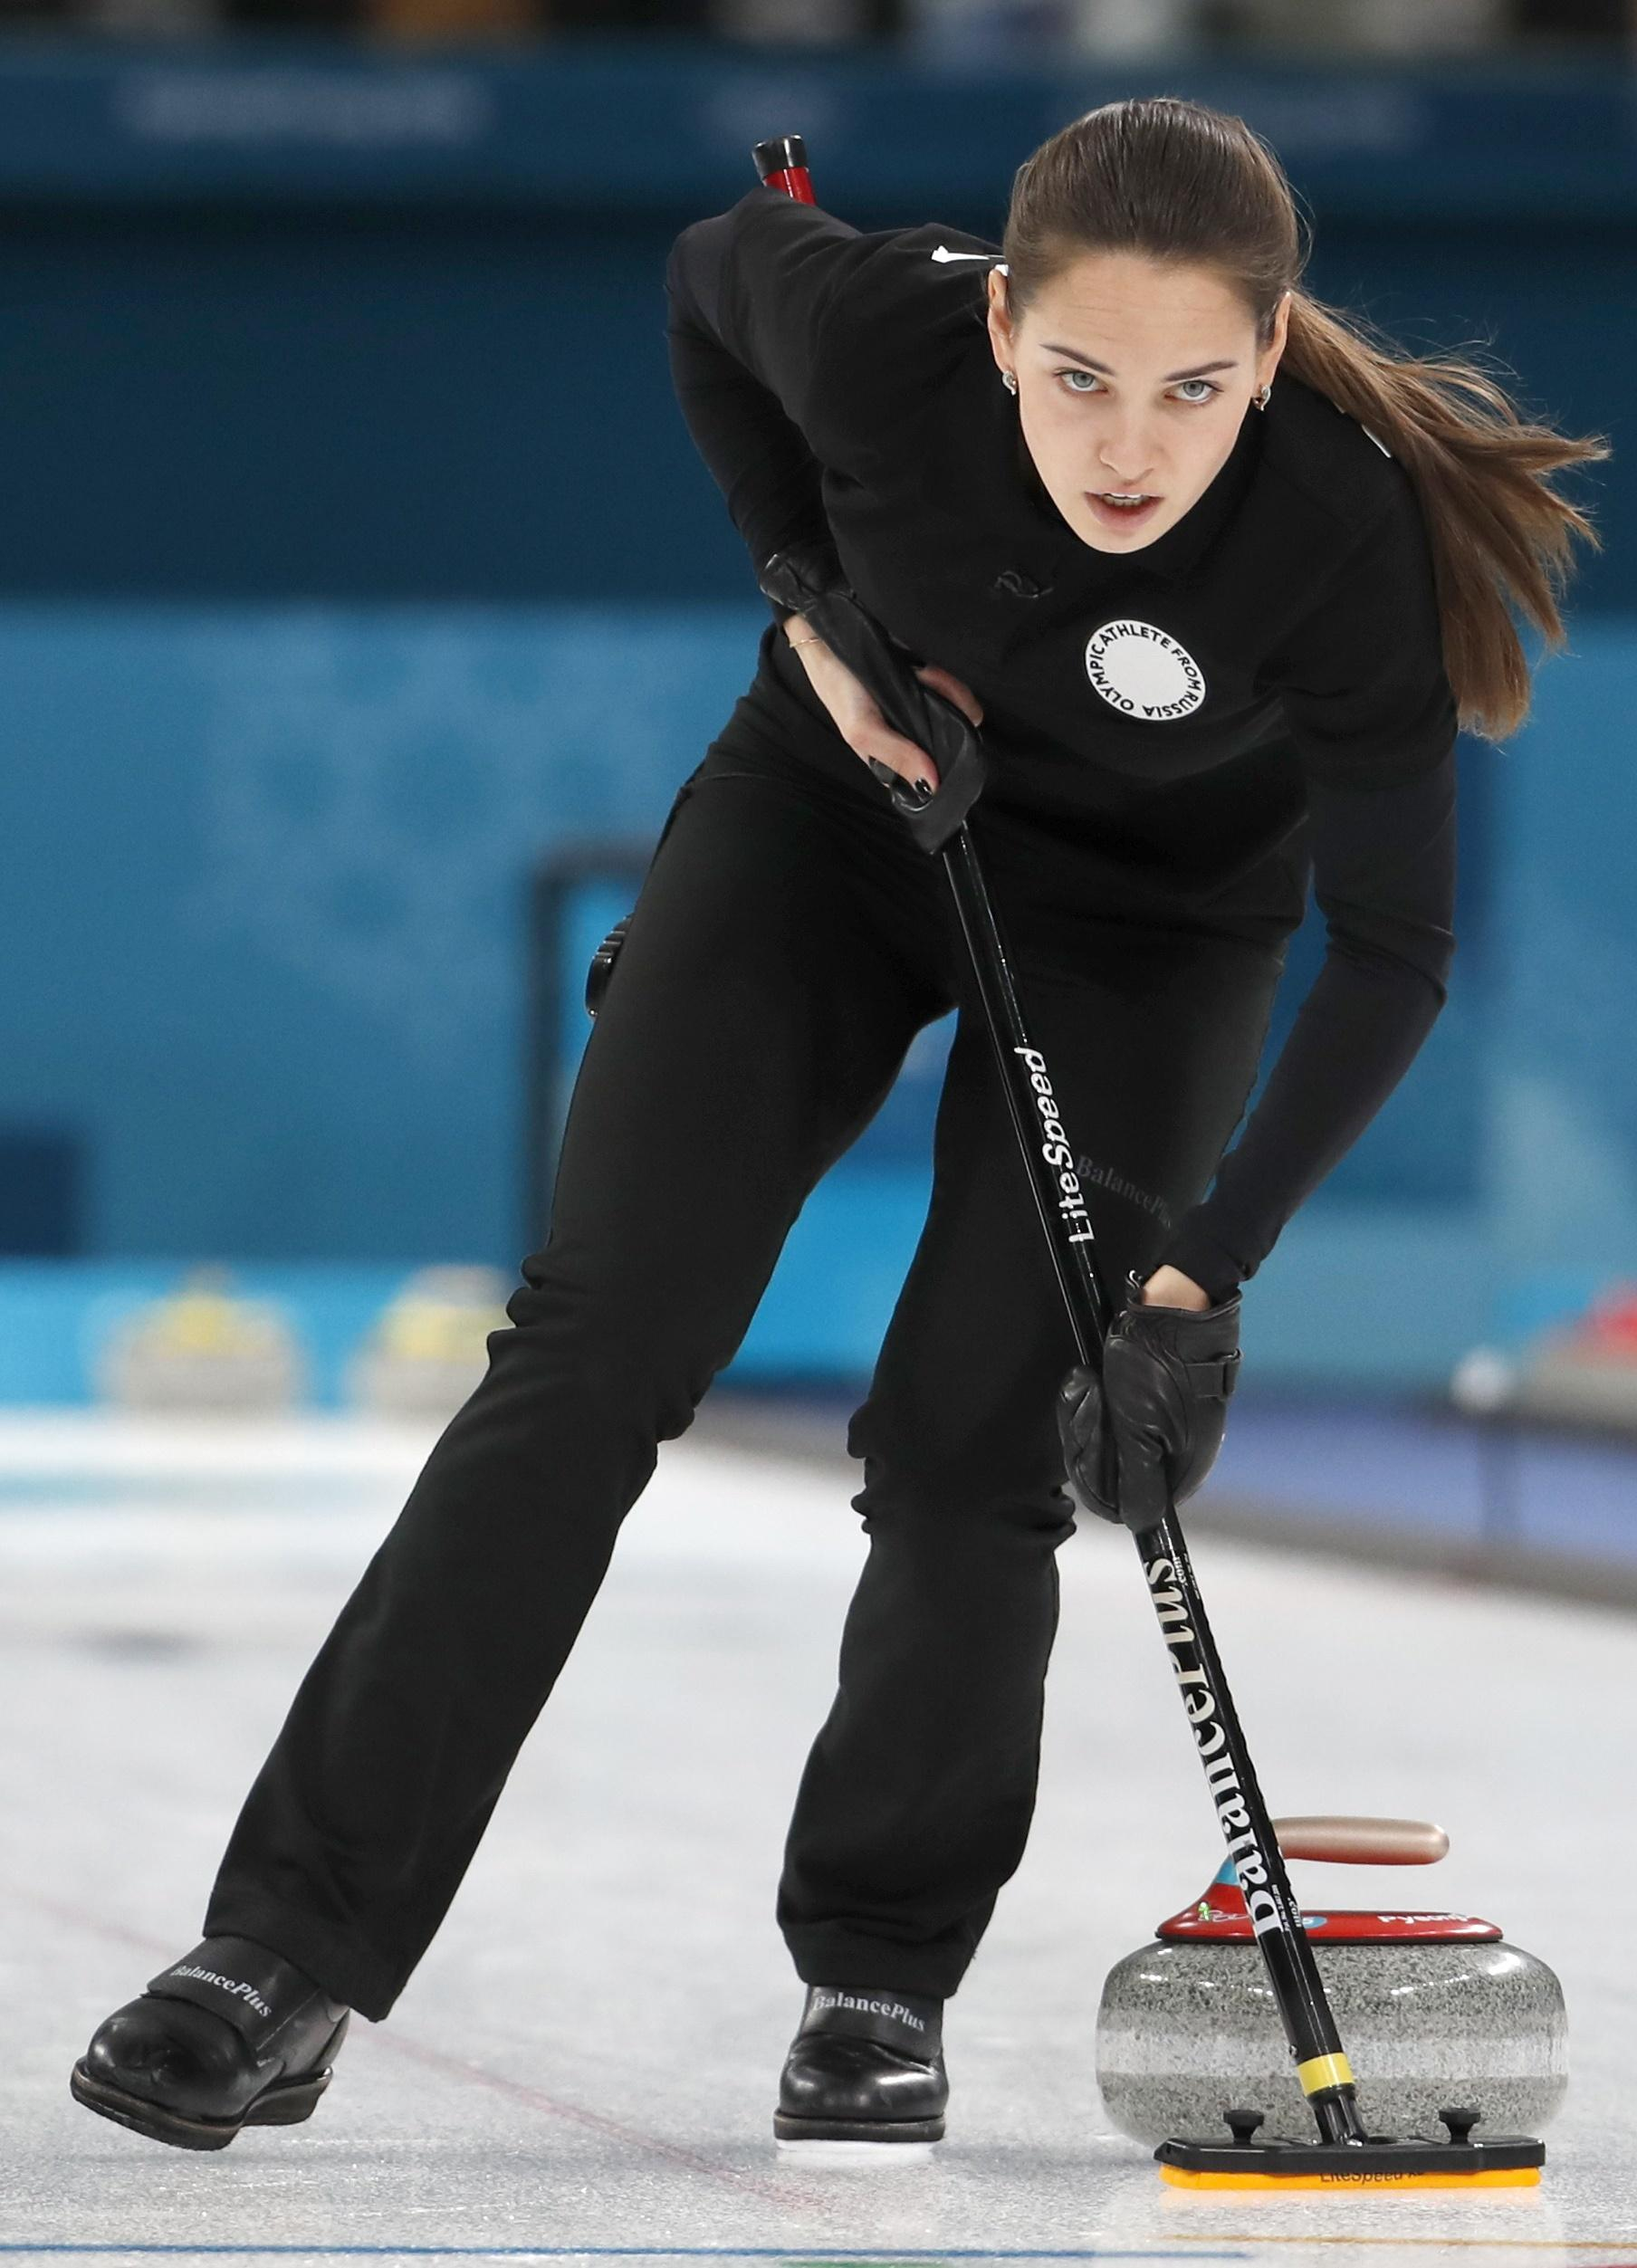 The 25-year-old is a world curling champ